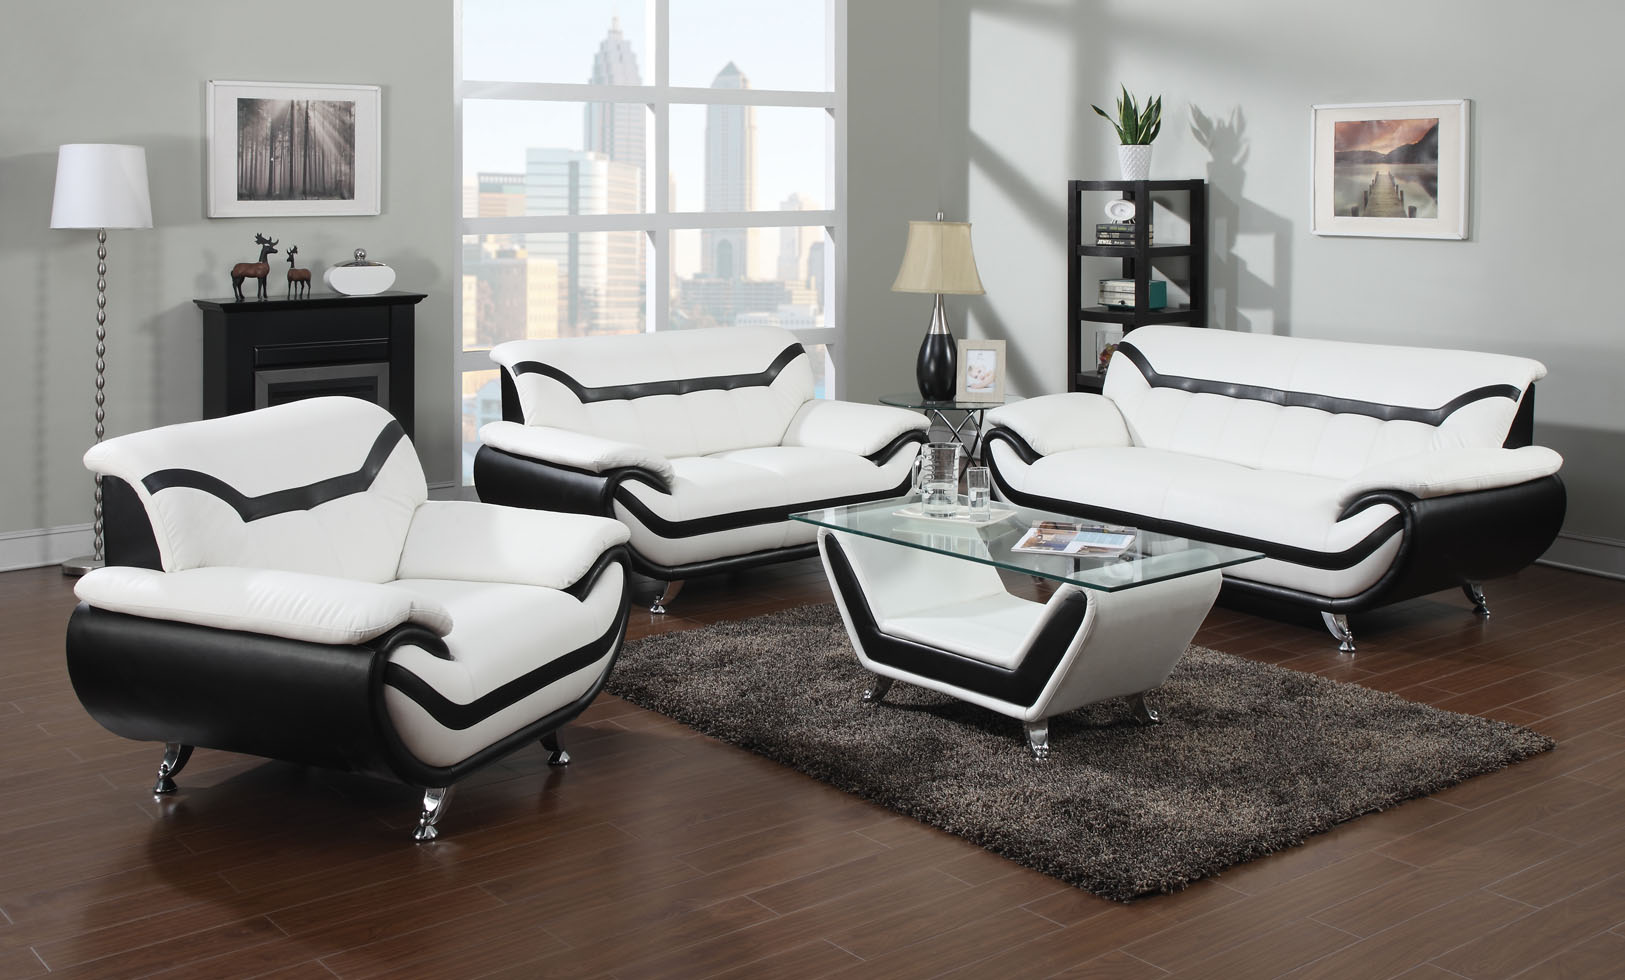 almafi 2 piece leather sofa set and love seat extra tall tables modern white sofas with black trim